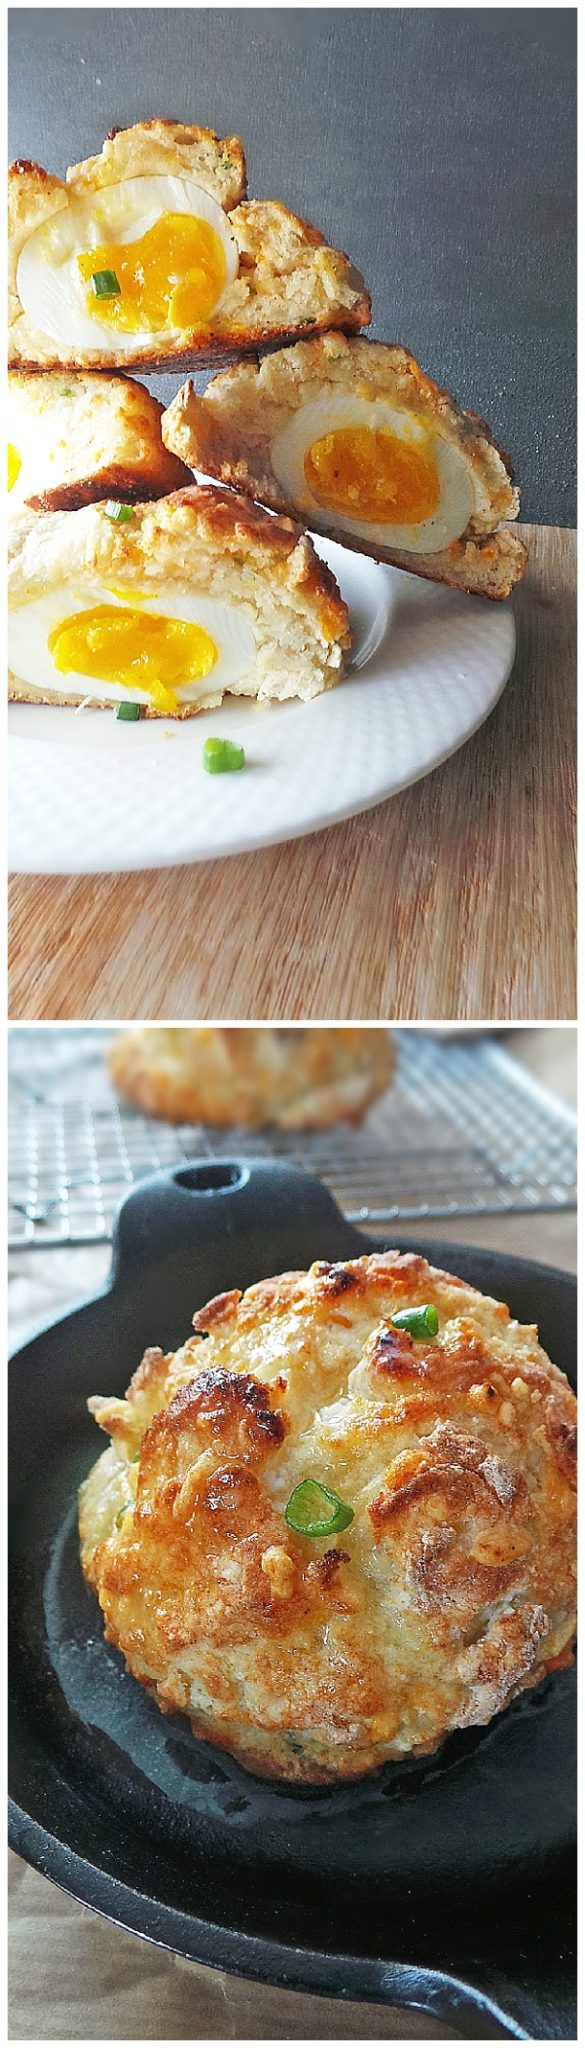 Surprise Cheddar Biscuits with Soft Boiled Egg inside Recipe via Vodka and Biscuits - The Best Homemade Biscuits Recipes - Quick, Easy and Delicious Bread Sides for Breakfast, Brunch, Lunch and Family Dinner! #biscuits #biscuitrecipes #homemdebiscuits #easybiscuits #rolls #homemadebreadsides #bread #breakfastrecipes #comfortfood